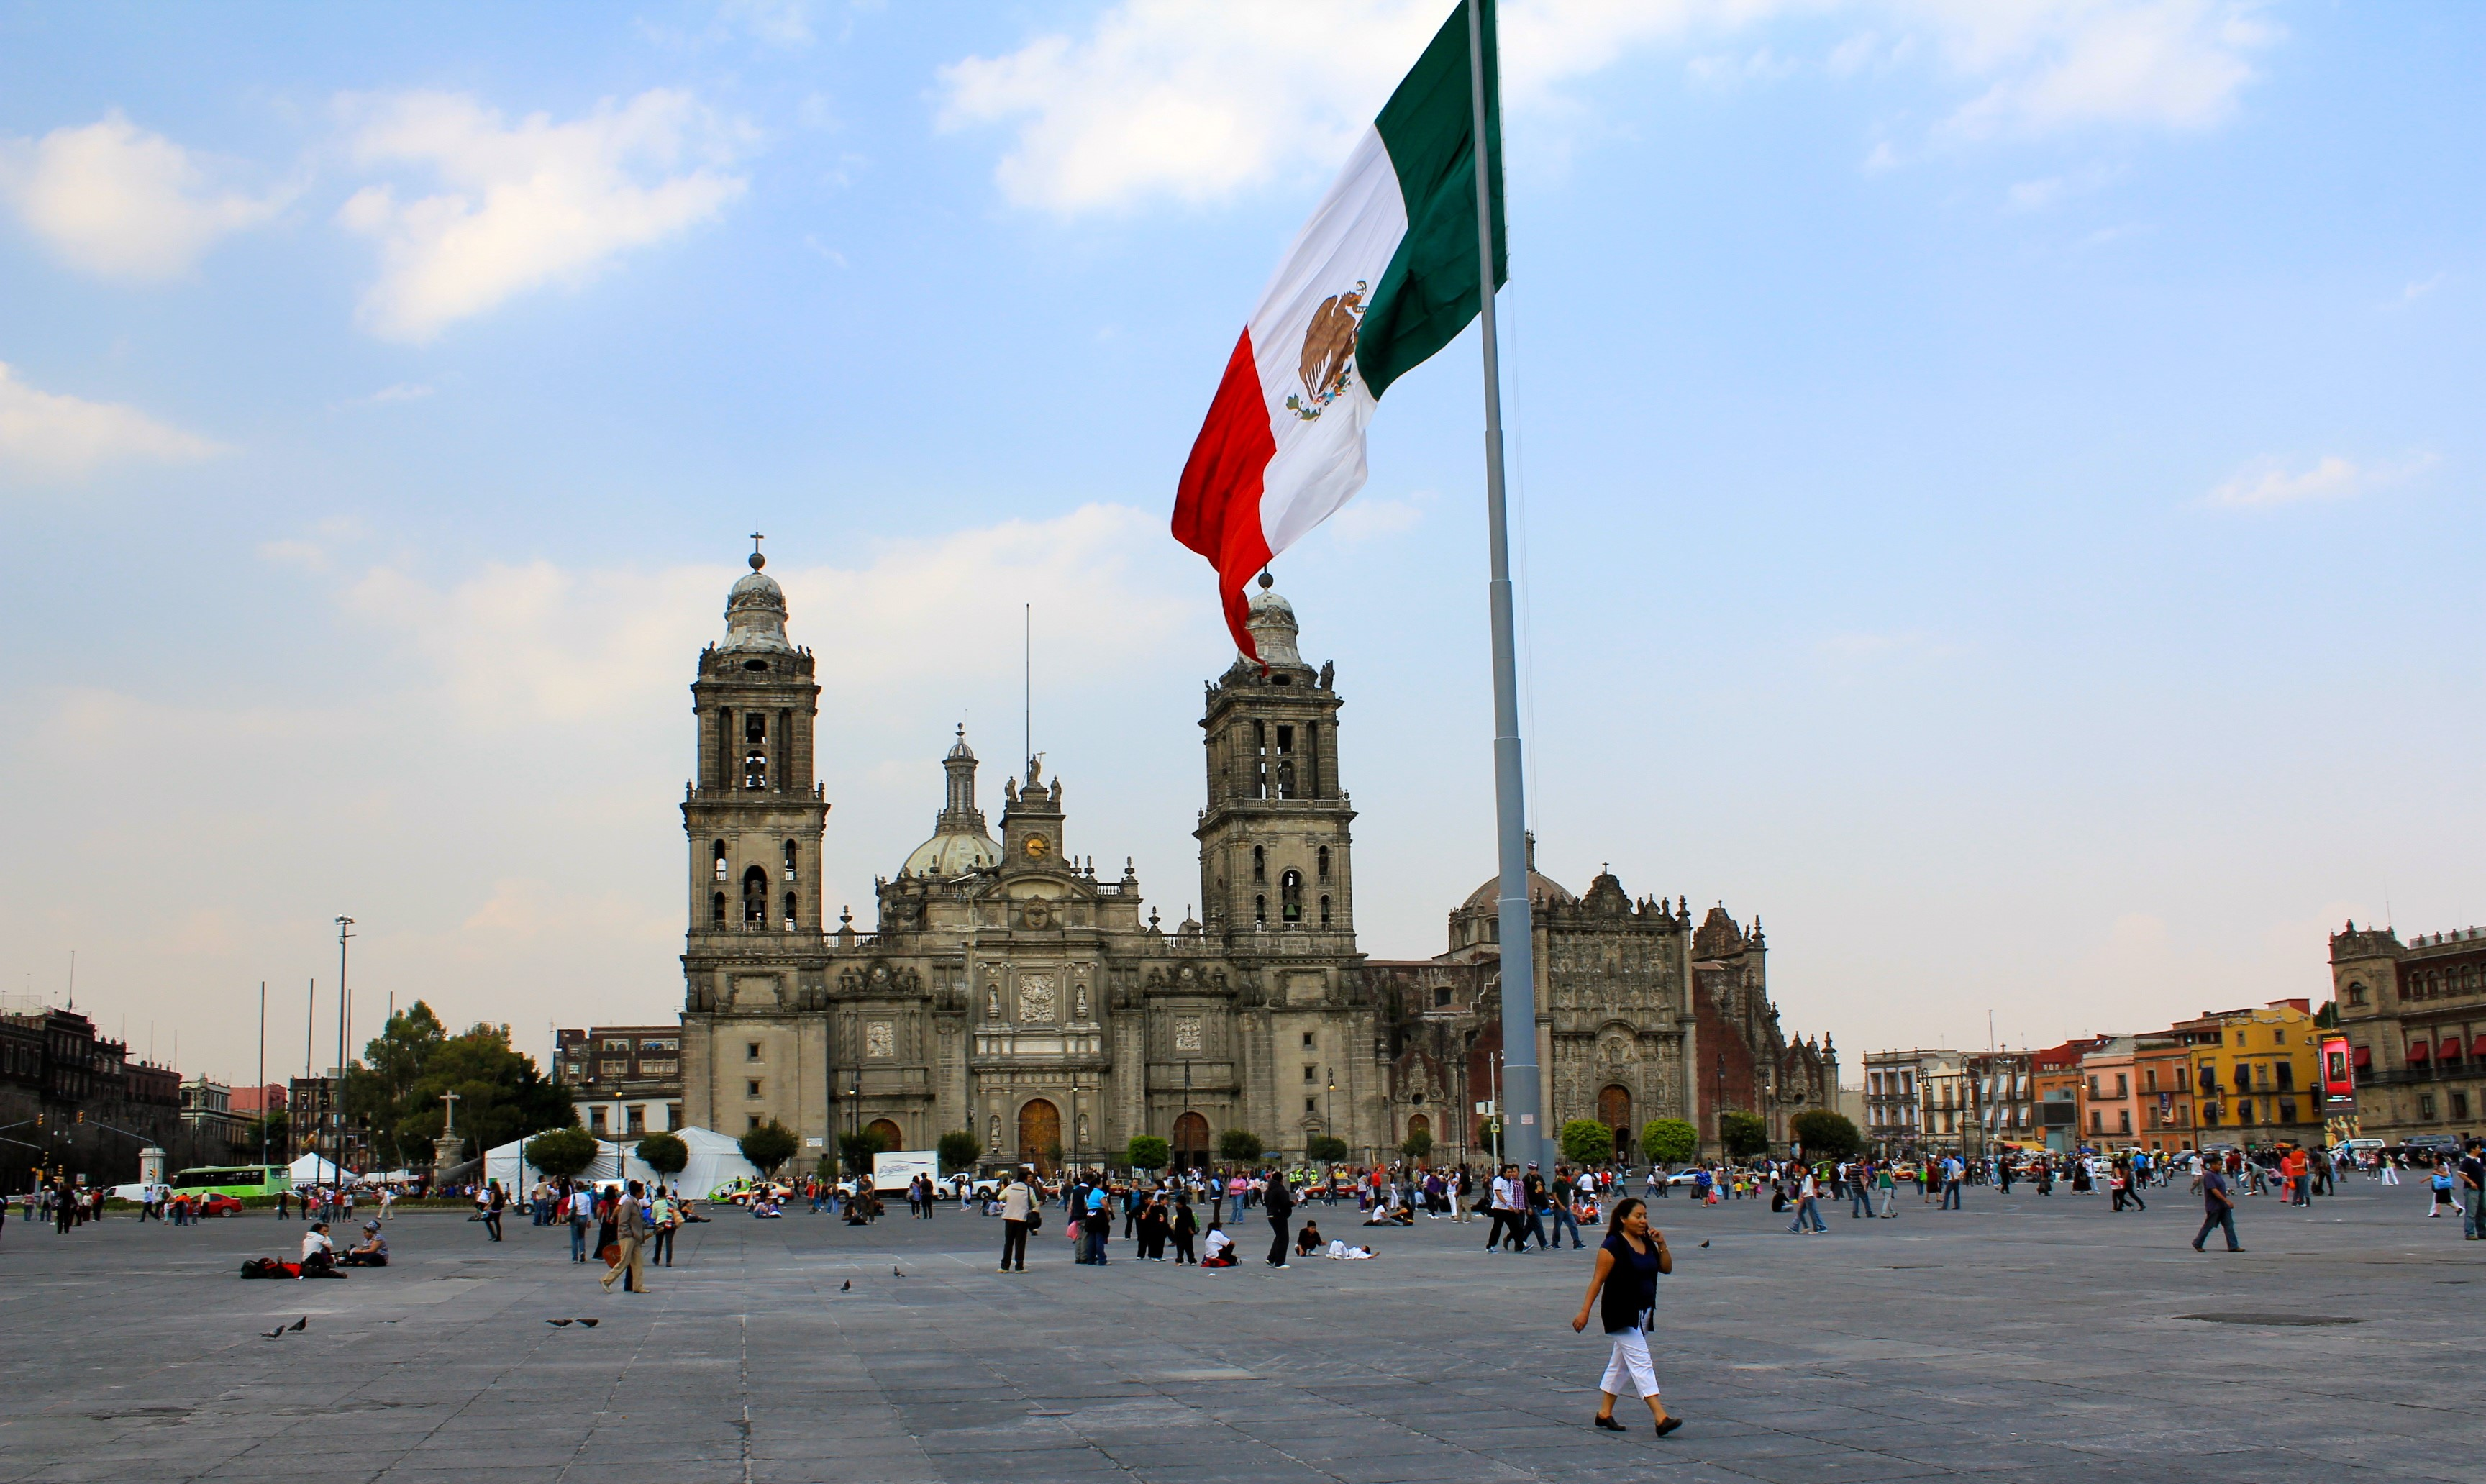 Crowdsourcing Benefits Zocalo Mexico